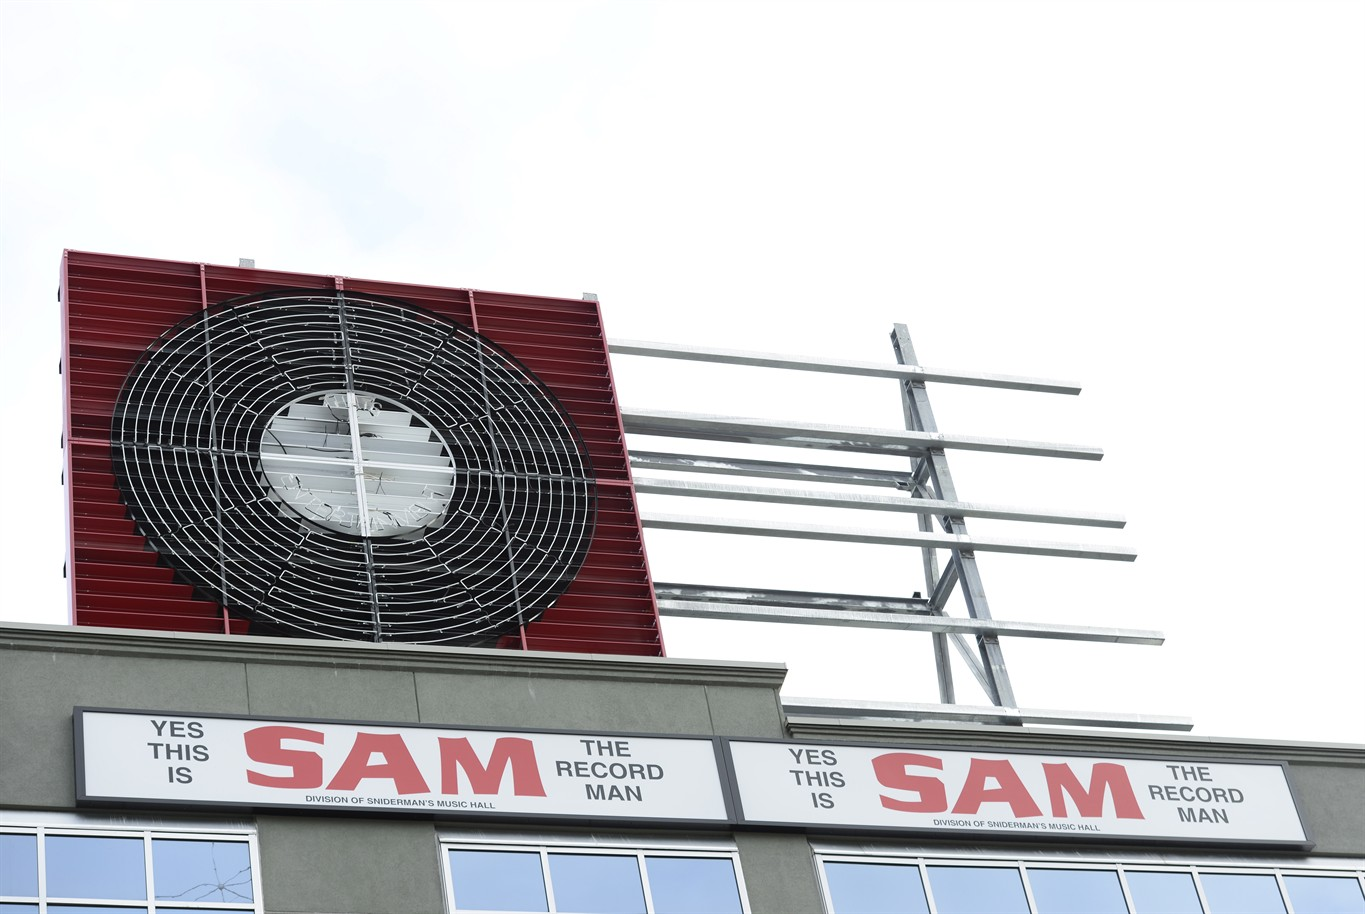 The iconic sign of Sam the Record Man returns